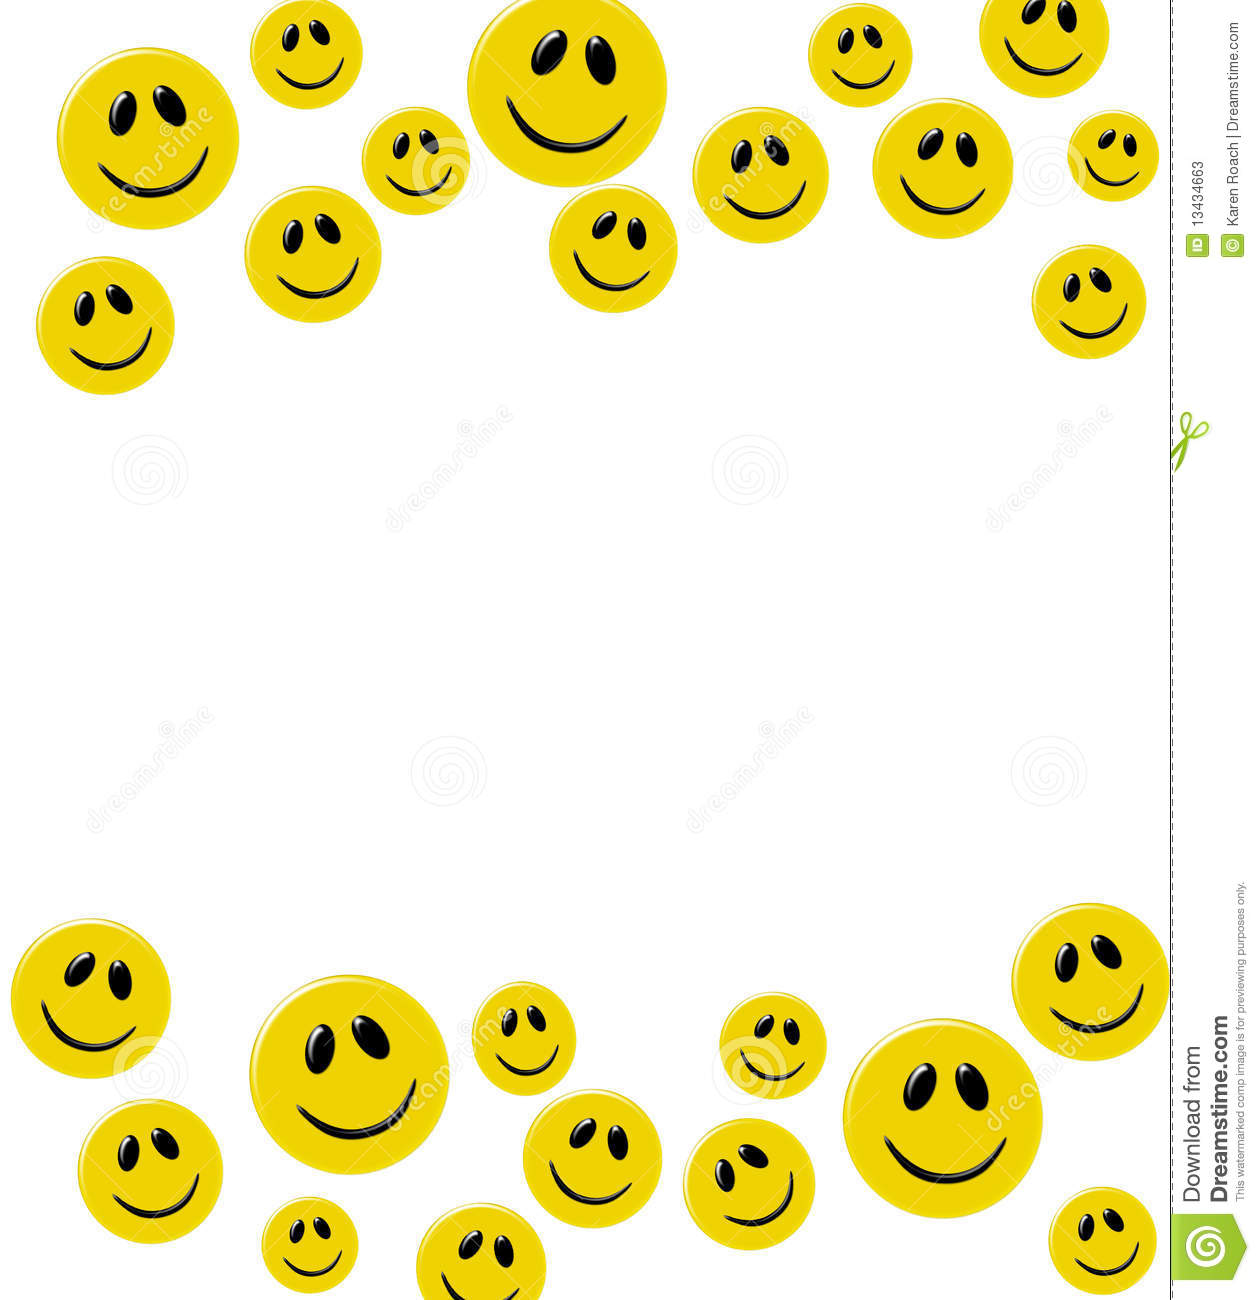 Lots of yellow smiley faces on a white background, happy border.